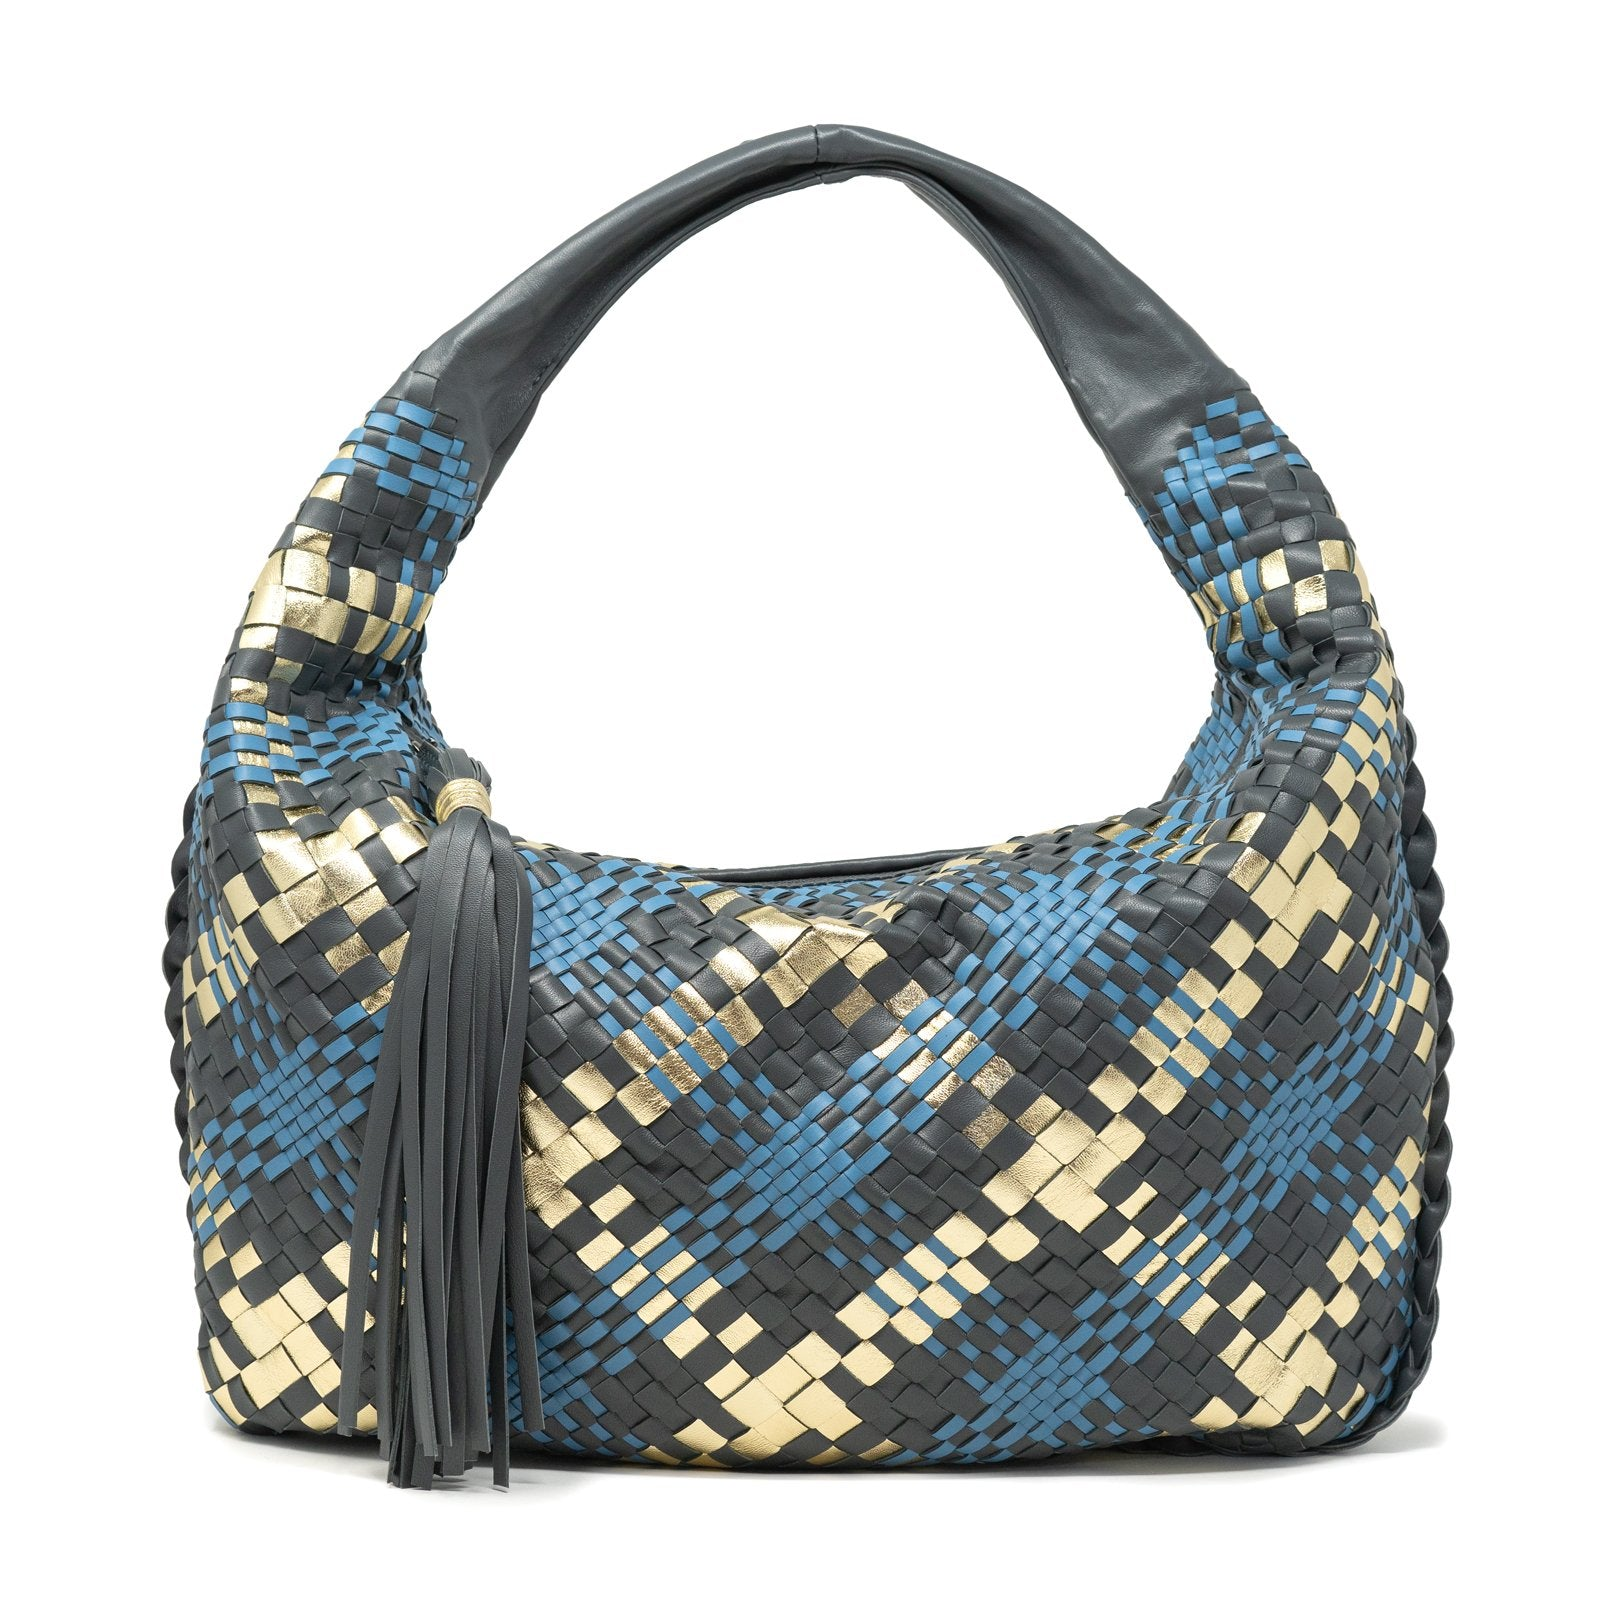 Brigitte Is Women Hobo Bag Intreccio Scozzese in Graphite Gold Marine - Jennifer Tattanelli